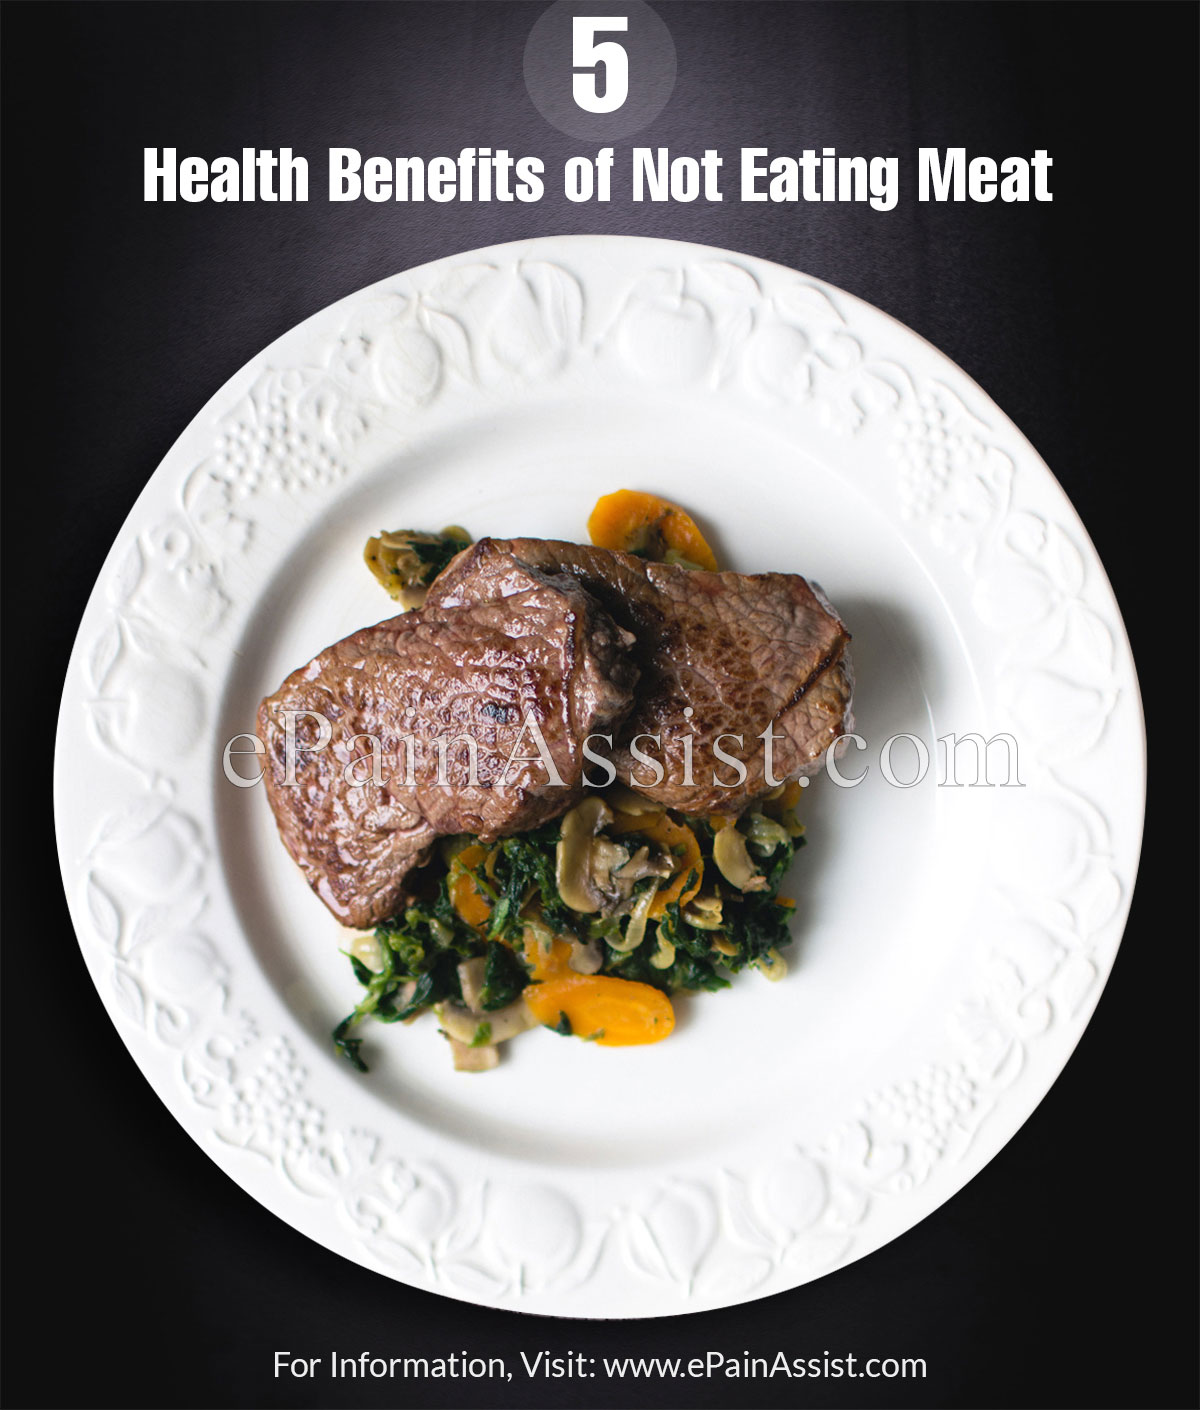 5 Health Benefits of Not Eating Meat